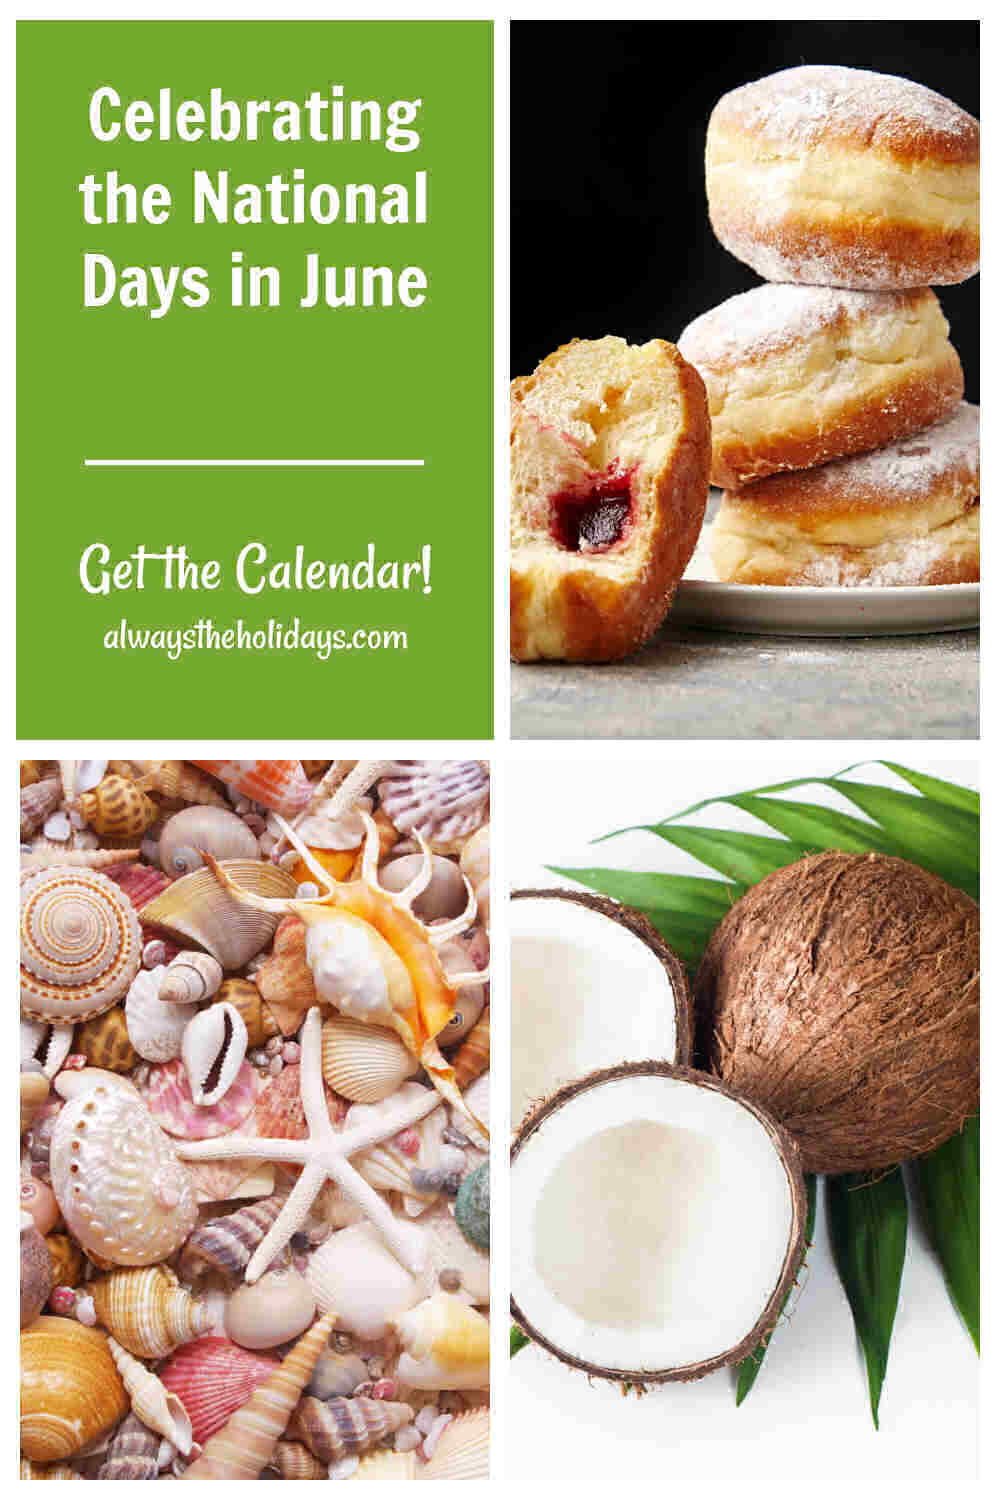 Stack of jelly donuts, seashells, coconuts in a collage with words celebrating the national days in June.